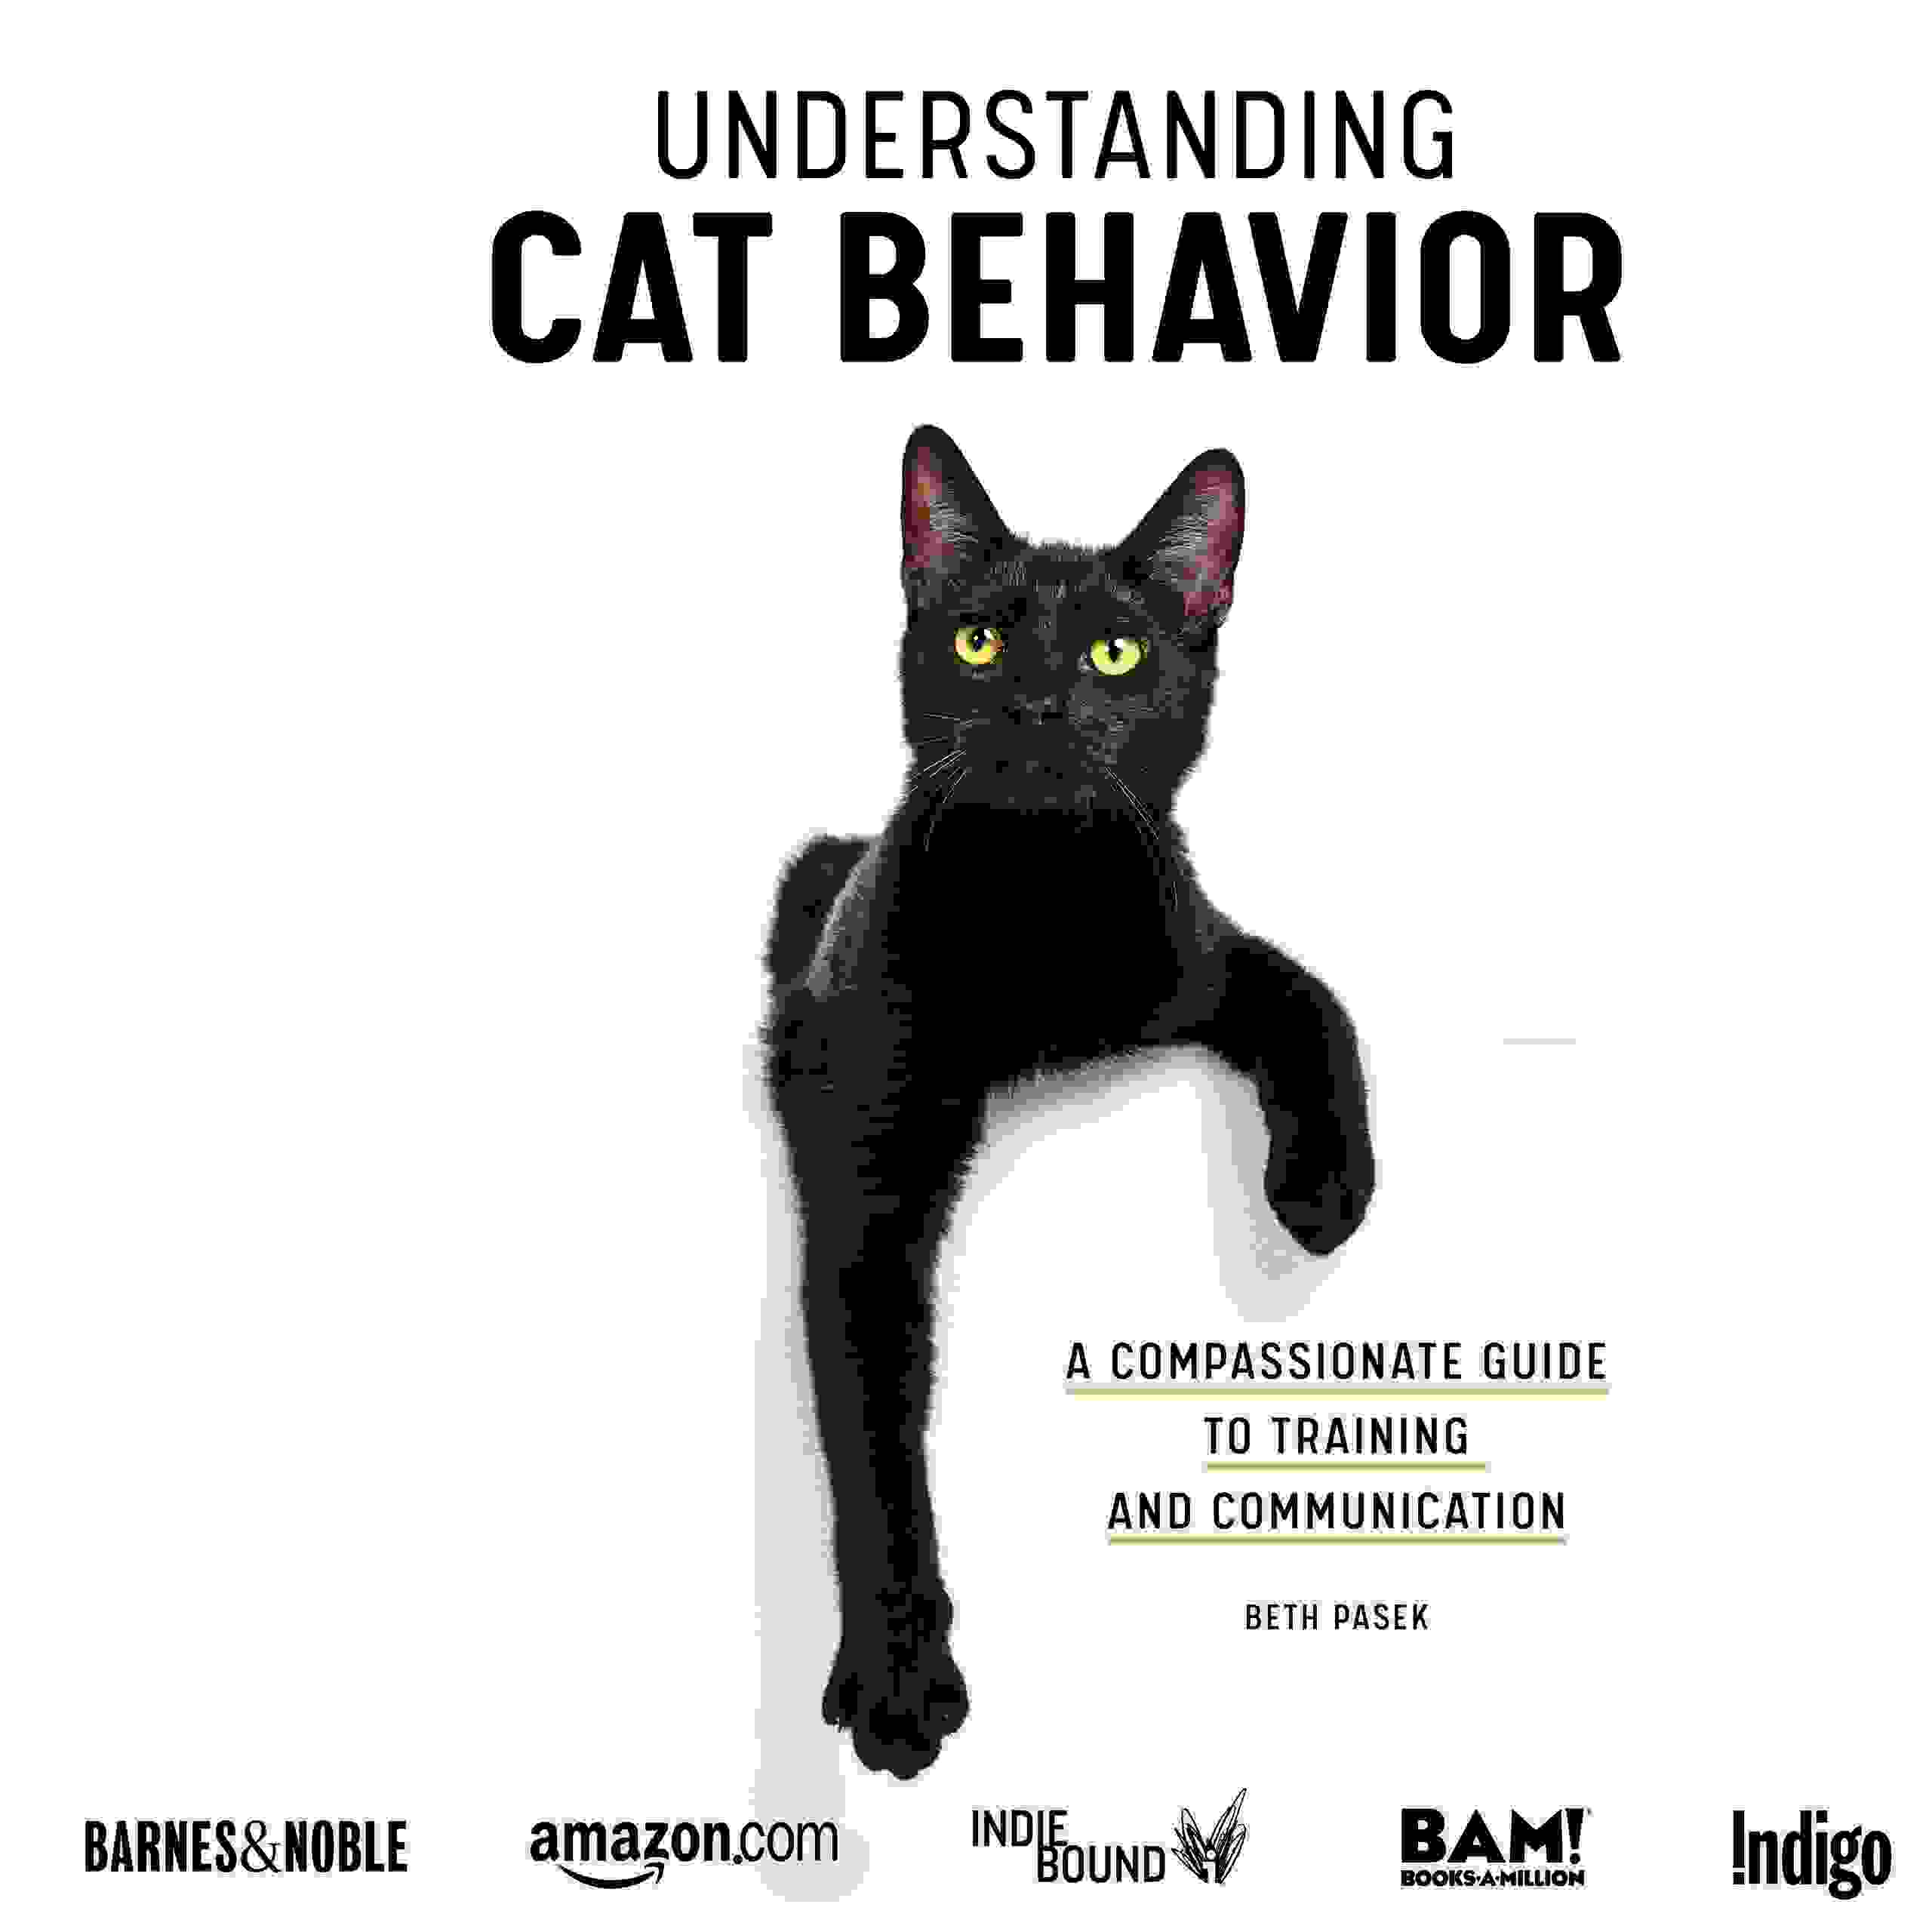 Understanding Cat Behavior Book on Amazon